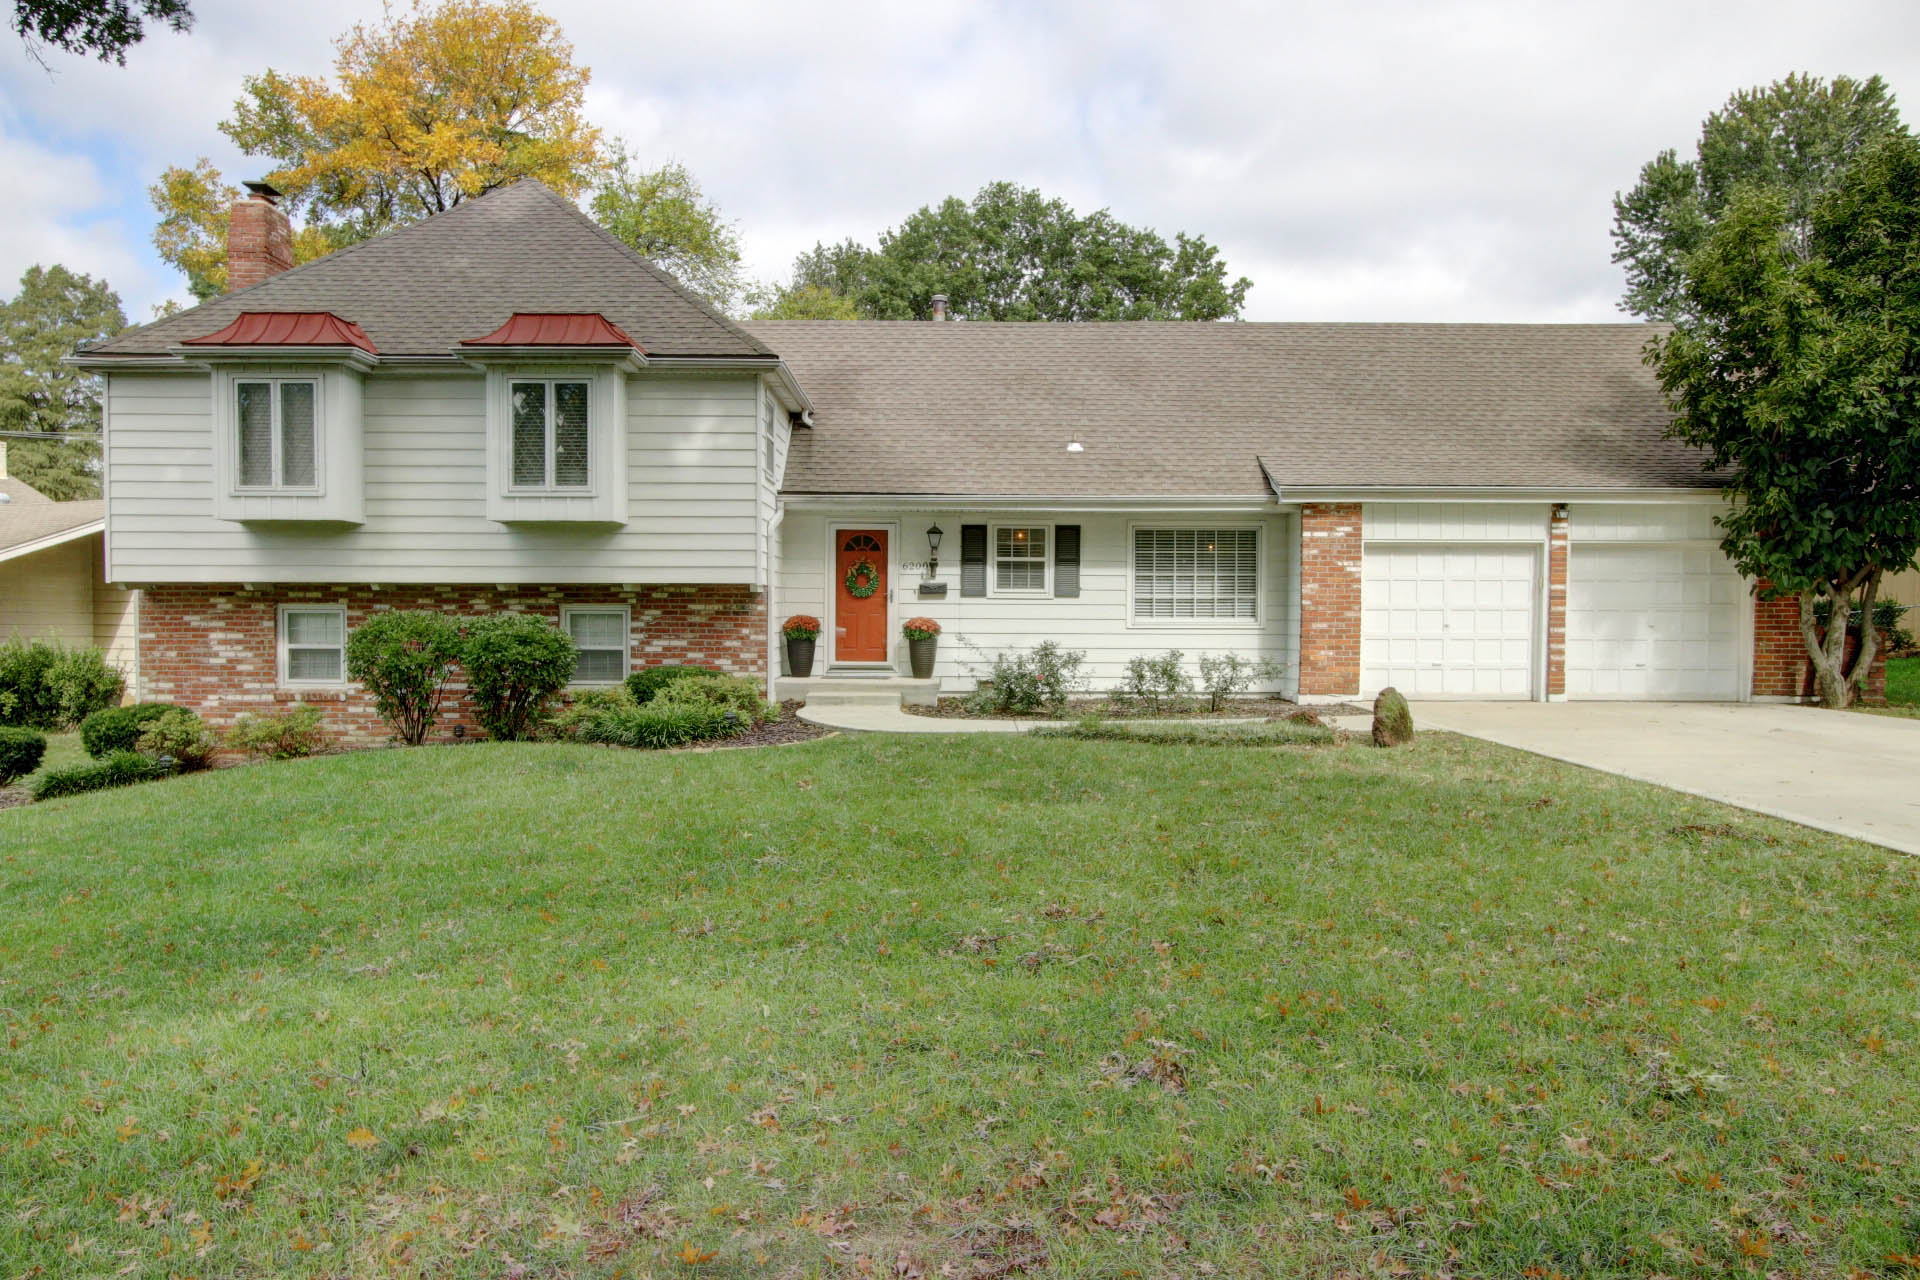 JUST LISTED! 2 OPENS! Beautifully Updated in Sought After Round Hill